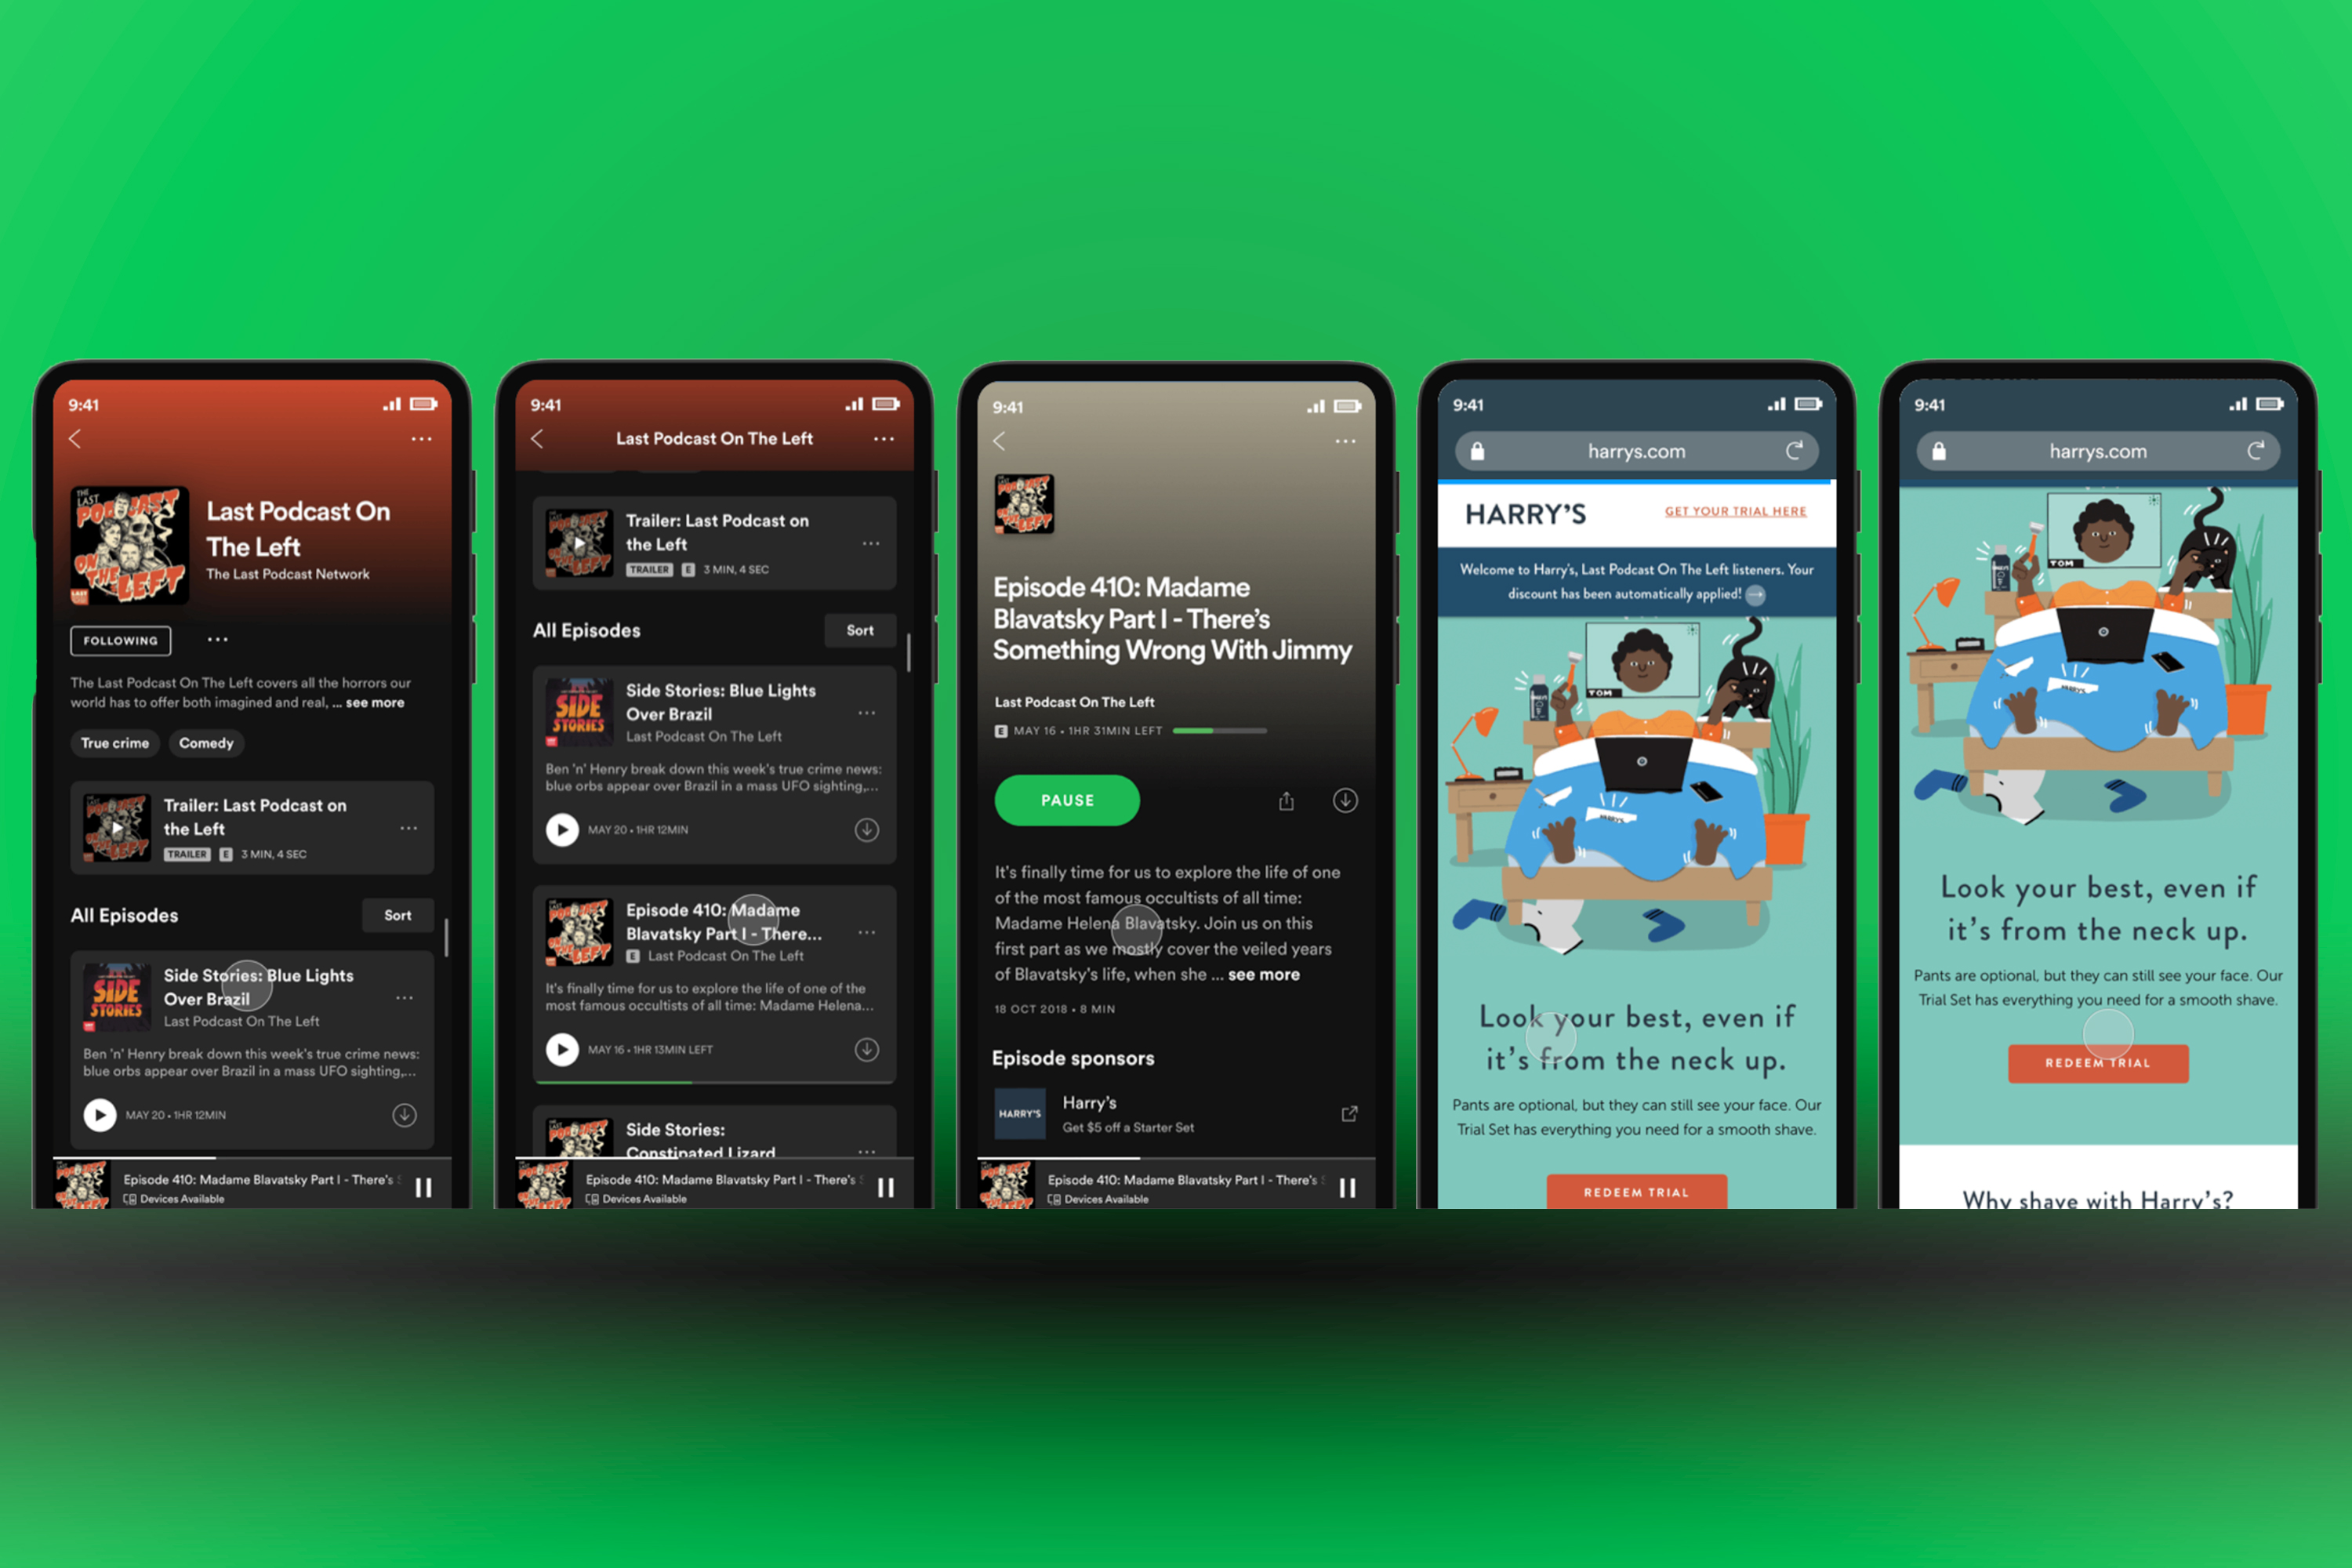 The company is testing a new ad product that does away with podcast hosts repeating the same promo code or vanity URL over-and-over again. Big picture, the move represents Spotify's larger ambitions to become Facebook for audio ads